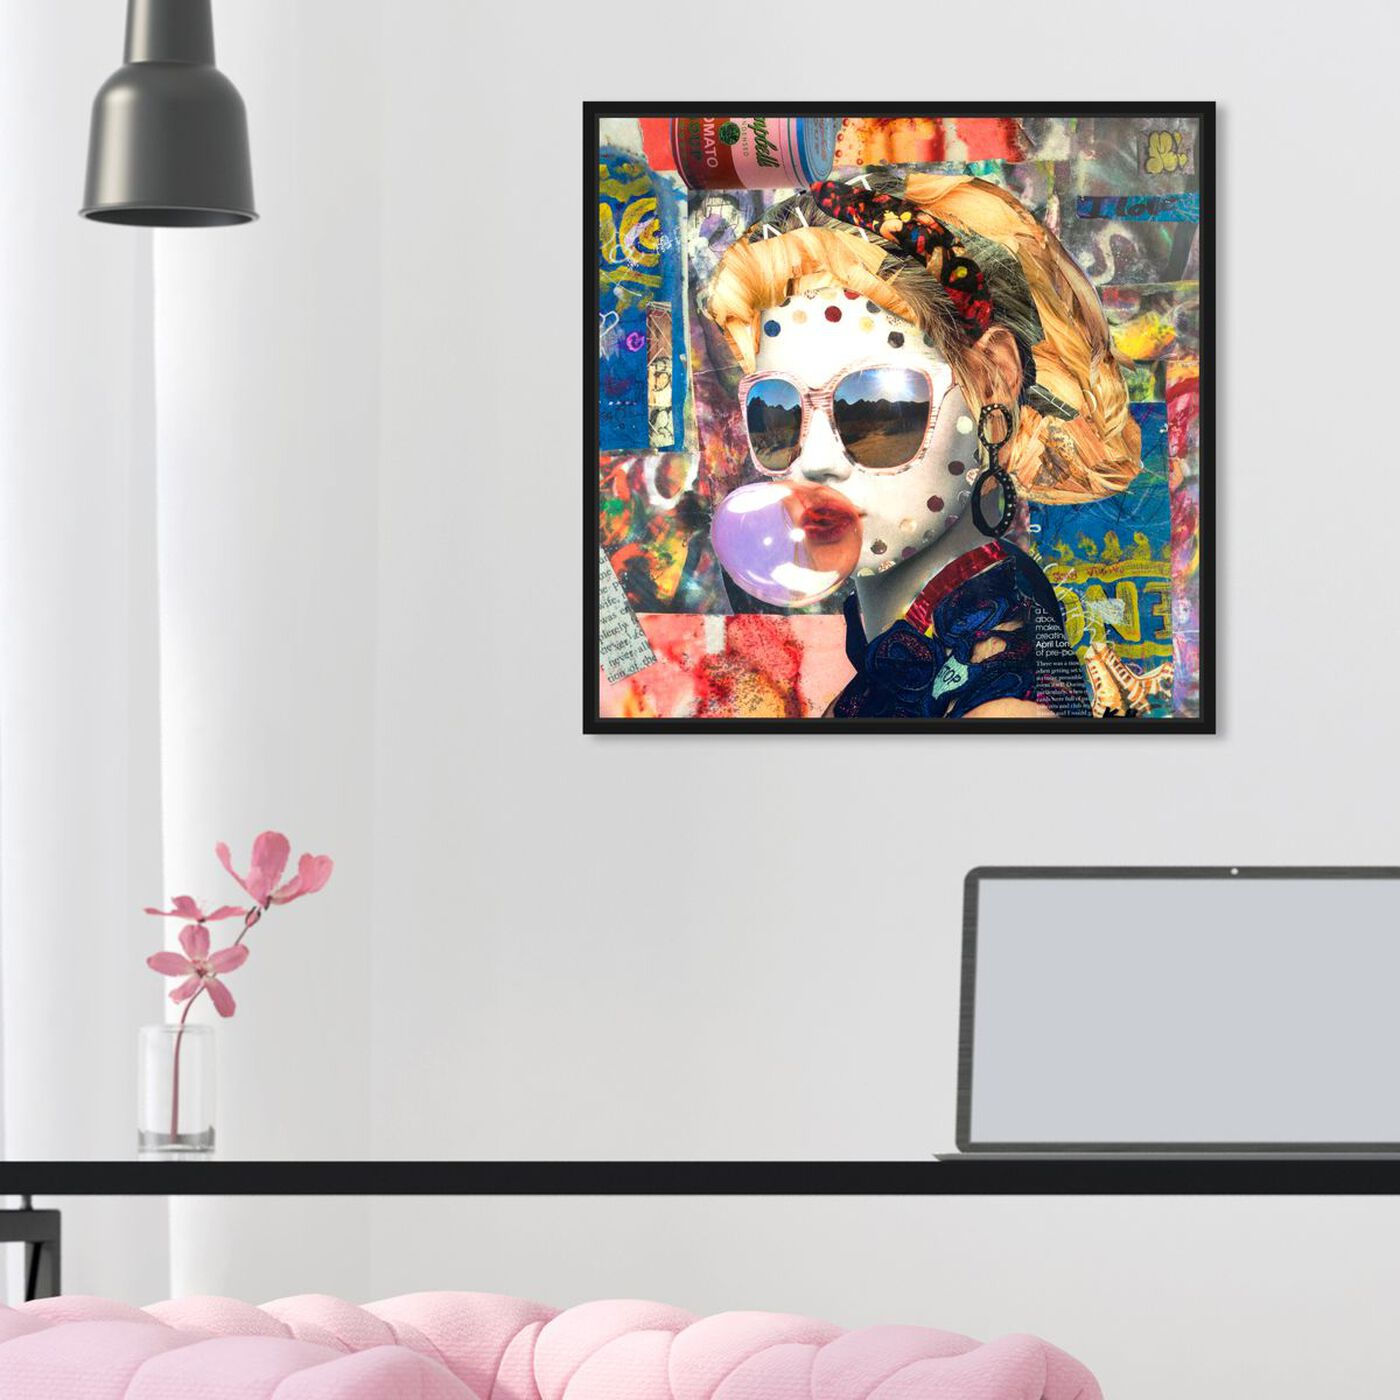 Hanging view of Katy Hirschfeld - Bubblegum featuring fashion and glam and portraits art.